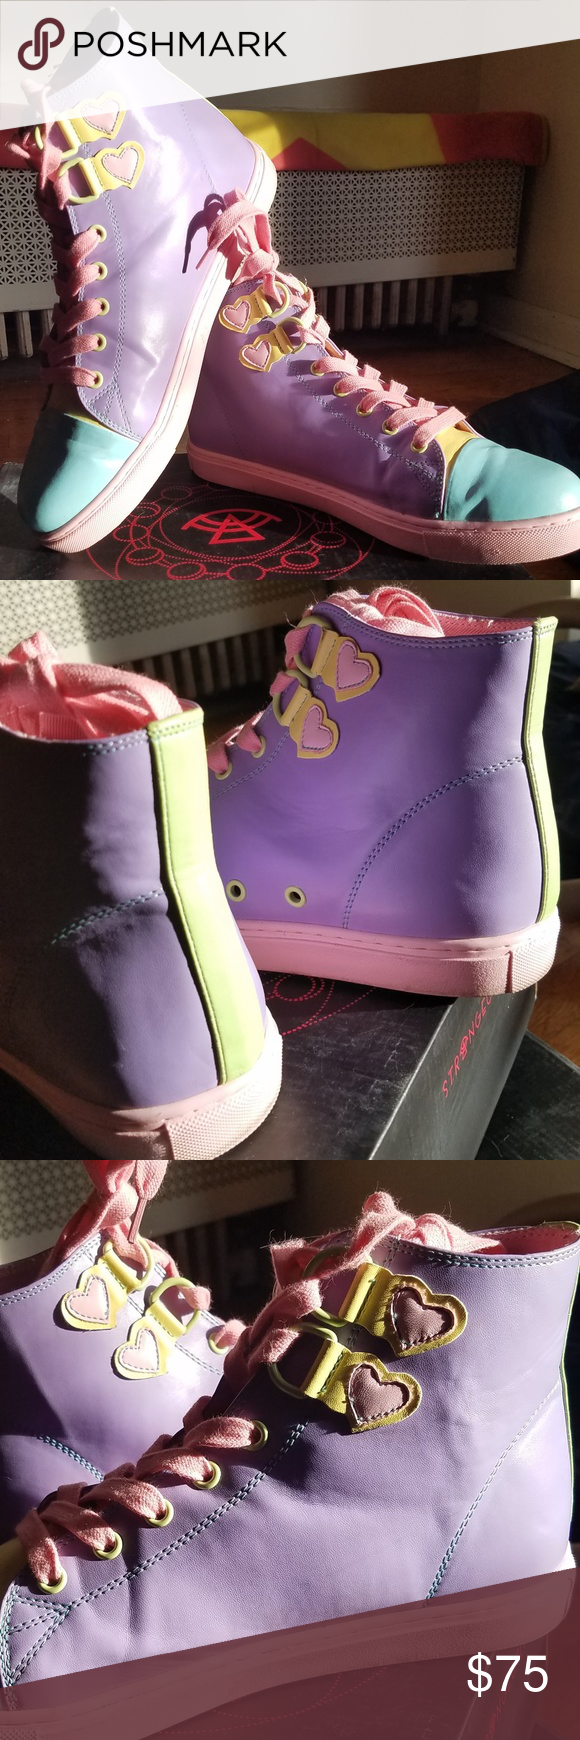 Pastel Chelseas Pastel Chelsea 11 💜 UnDamaged 💜 Paid $90 💜 🌸Feel free to ask questio